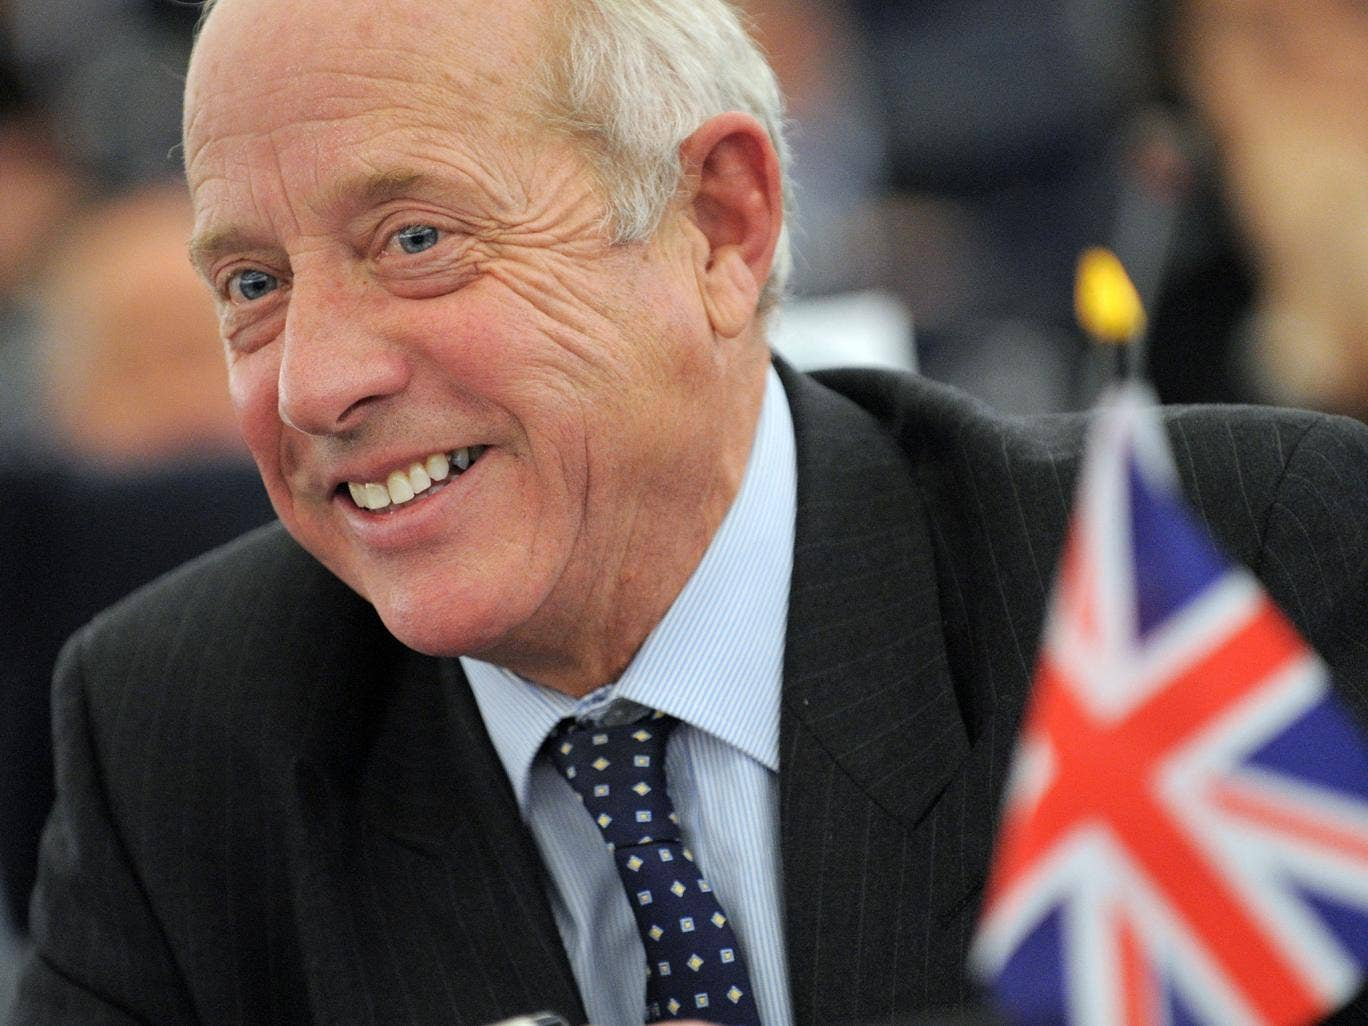 Godfrey Bloom is pictured before his exclusion, at the European Parliament in Strasbourg, eastern France, on November 24, 2010.